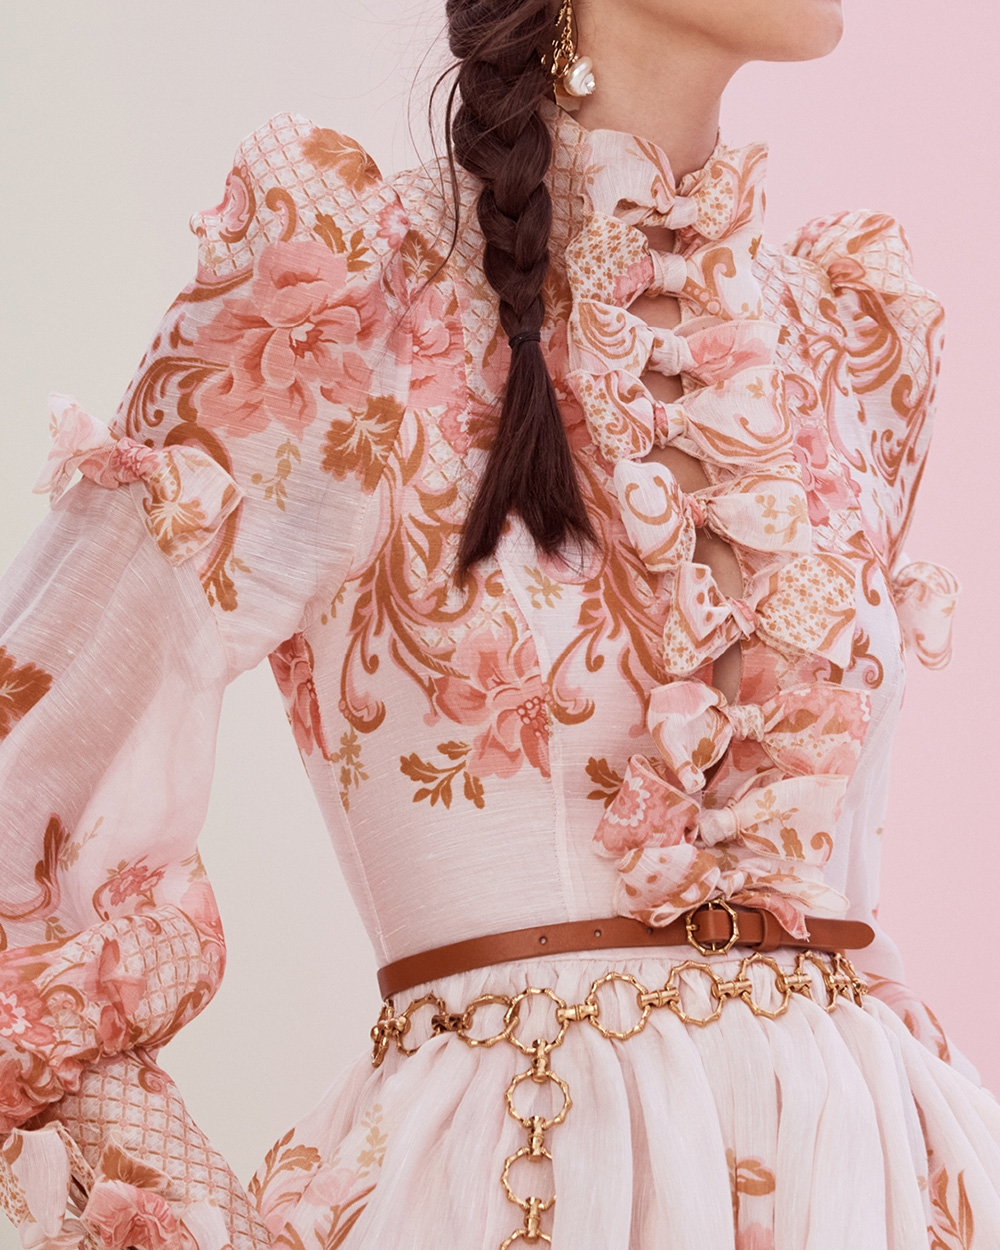 IN THE DETAIL: LOOK 28 RESORT READY TO WEAR 2022, THE POSTCARD